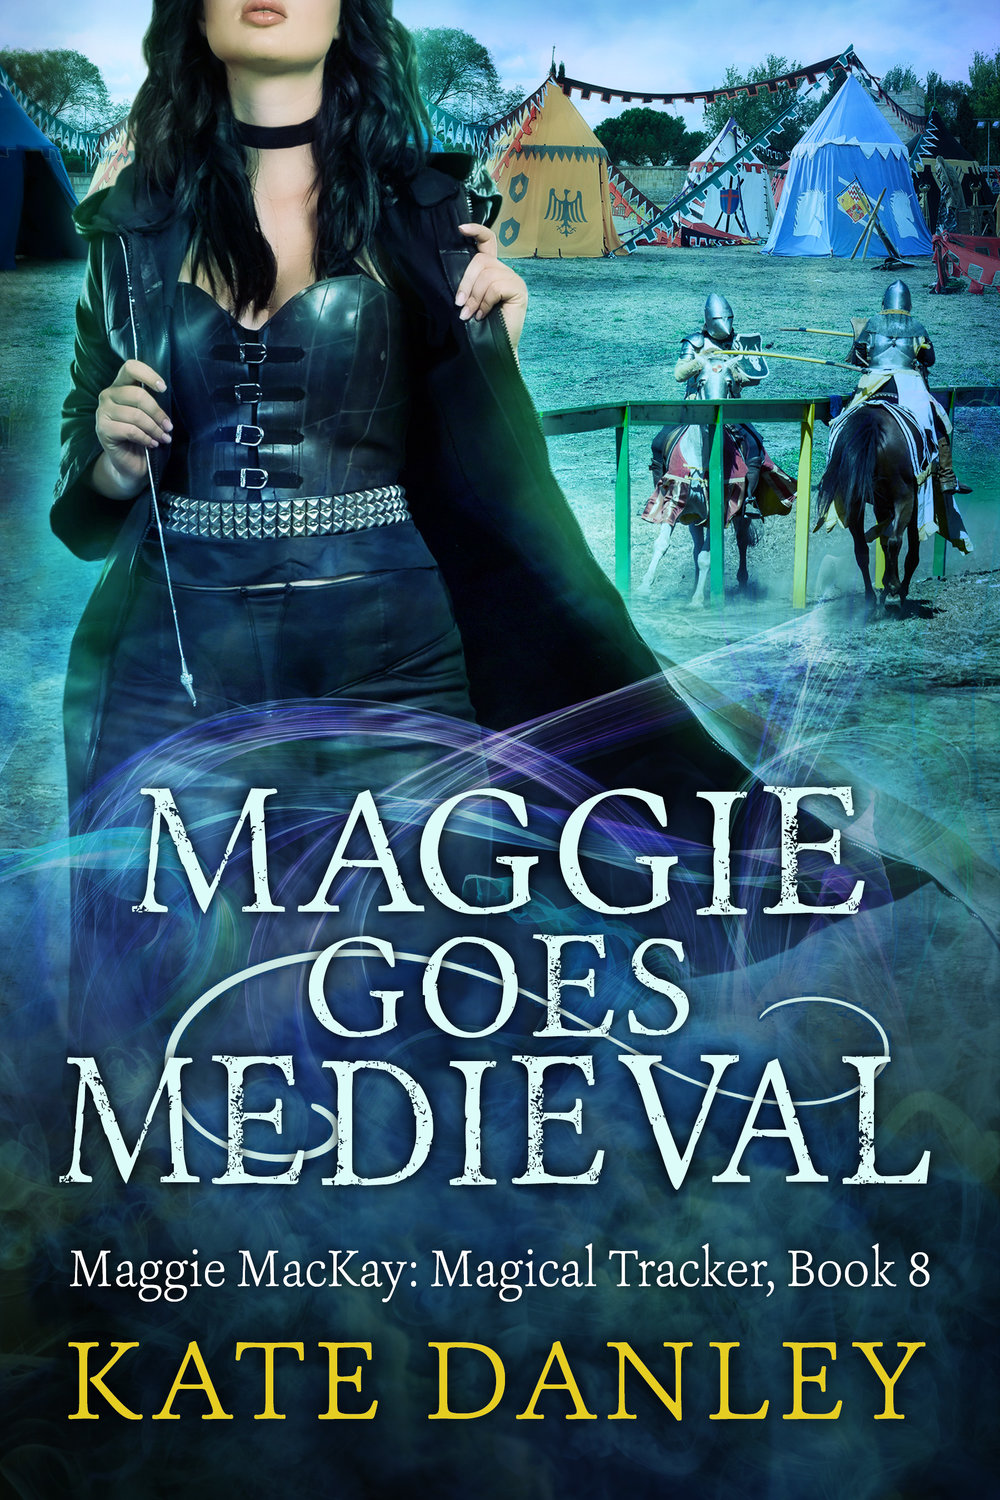 Maggie-Goes-Medieval_ebook-b.jpg